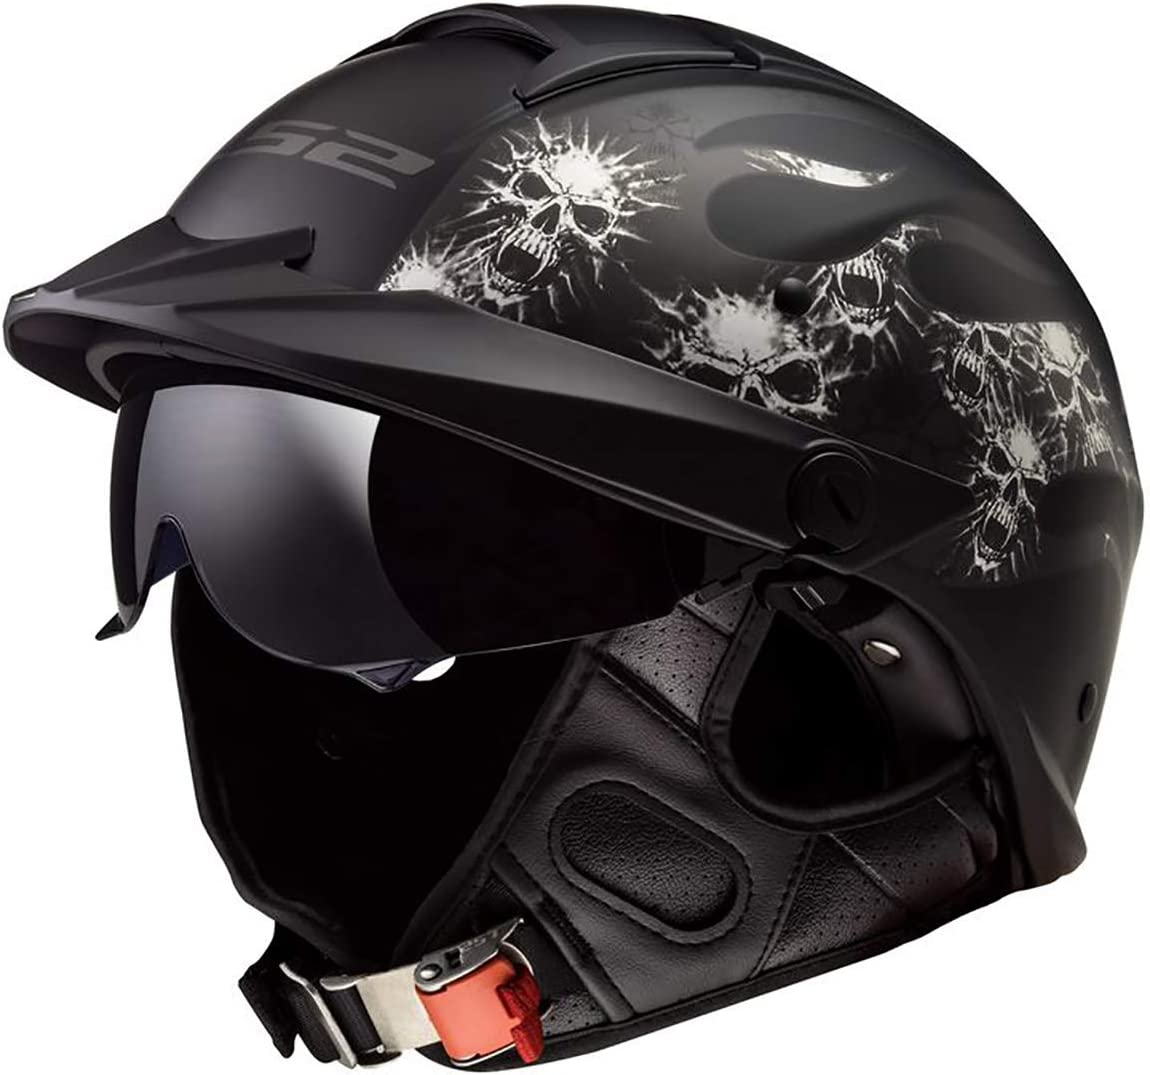 LS2 Helmets Rebellion Motorcycle Half Helmet}